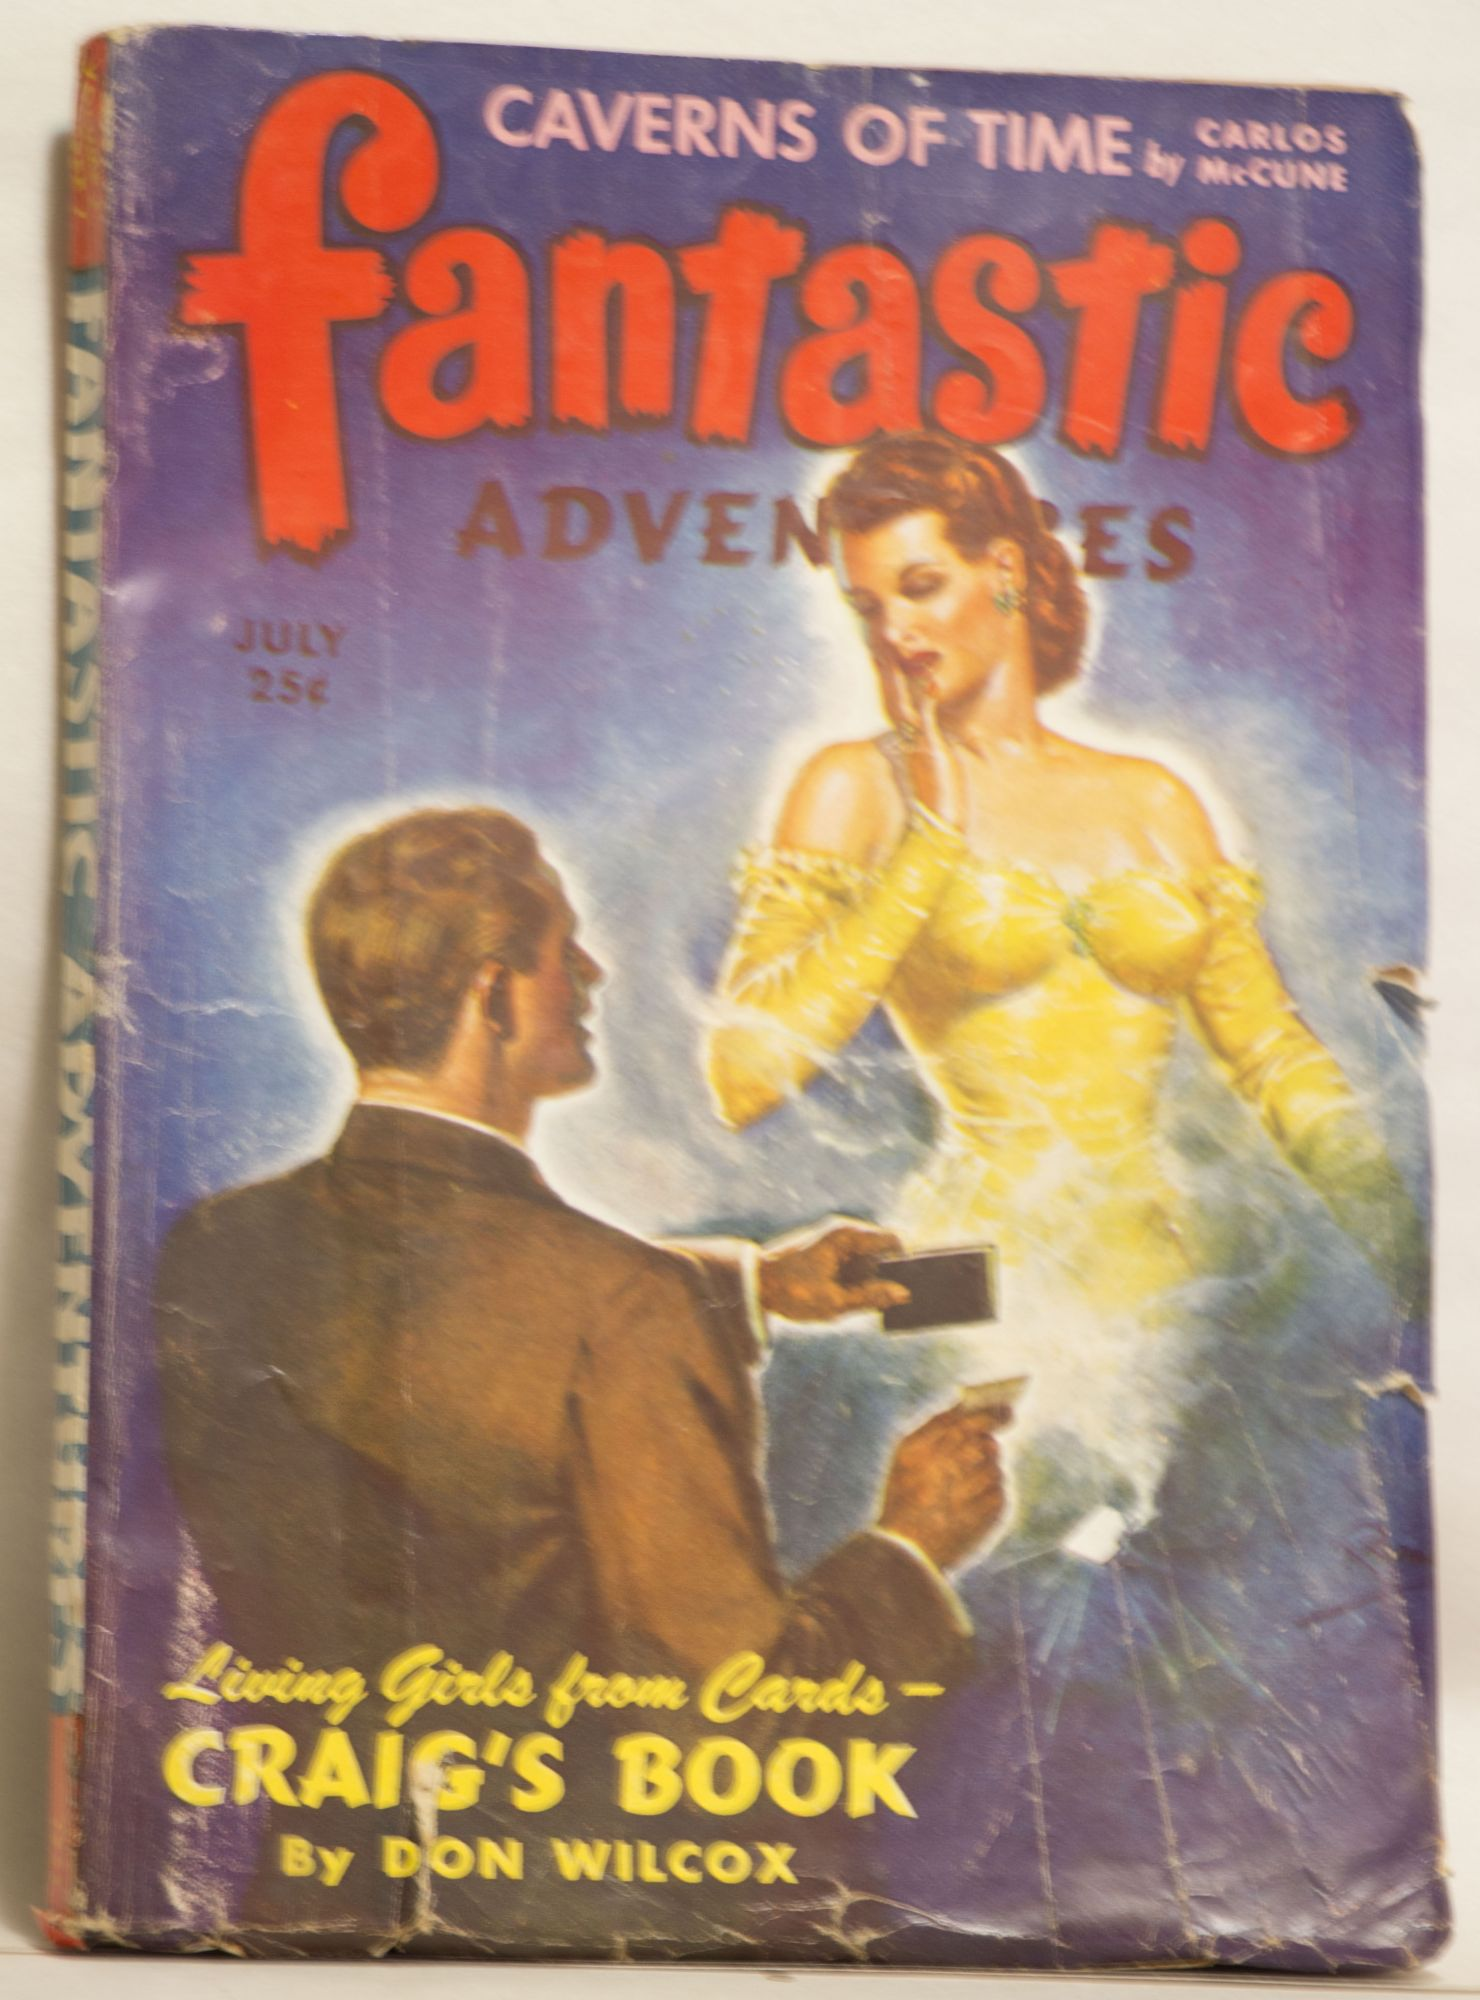 Fantastic Adventures July 1943 25¢ Vol 5. No. 7